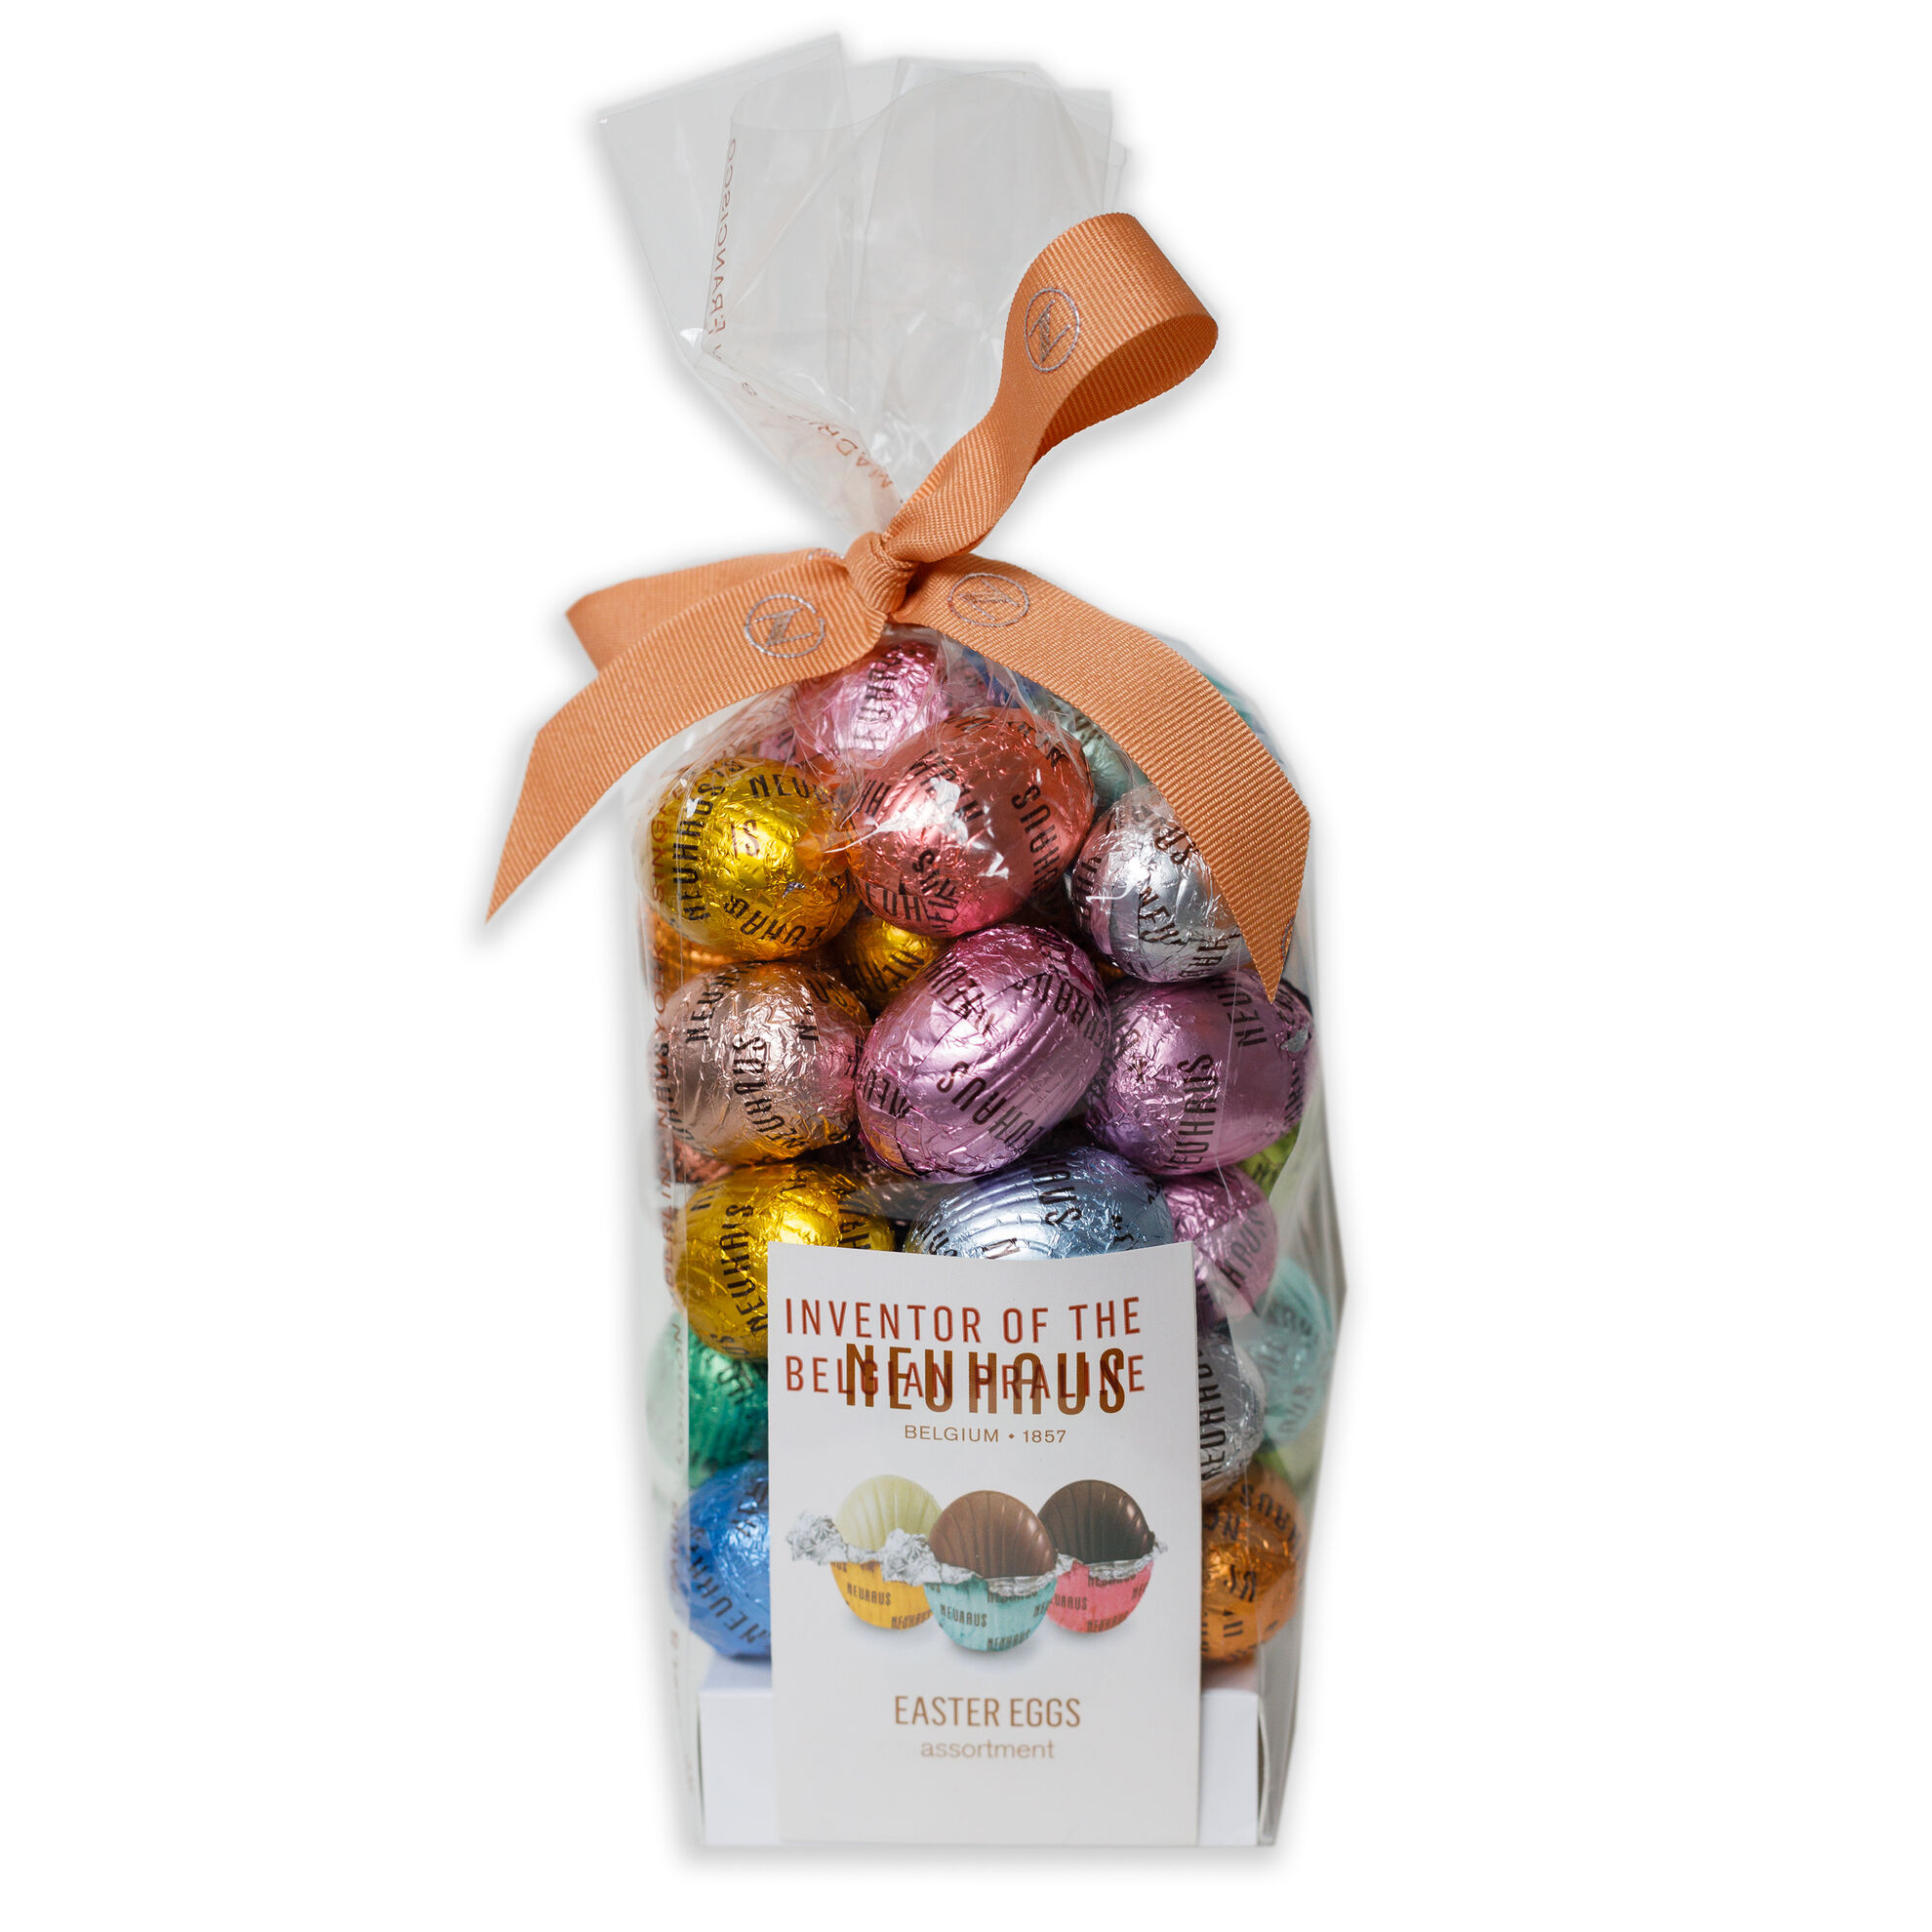 Easter Eggs Cello Bag 1 lb image number 11